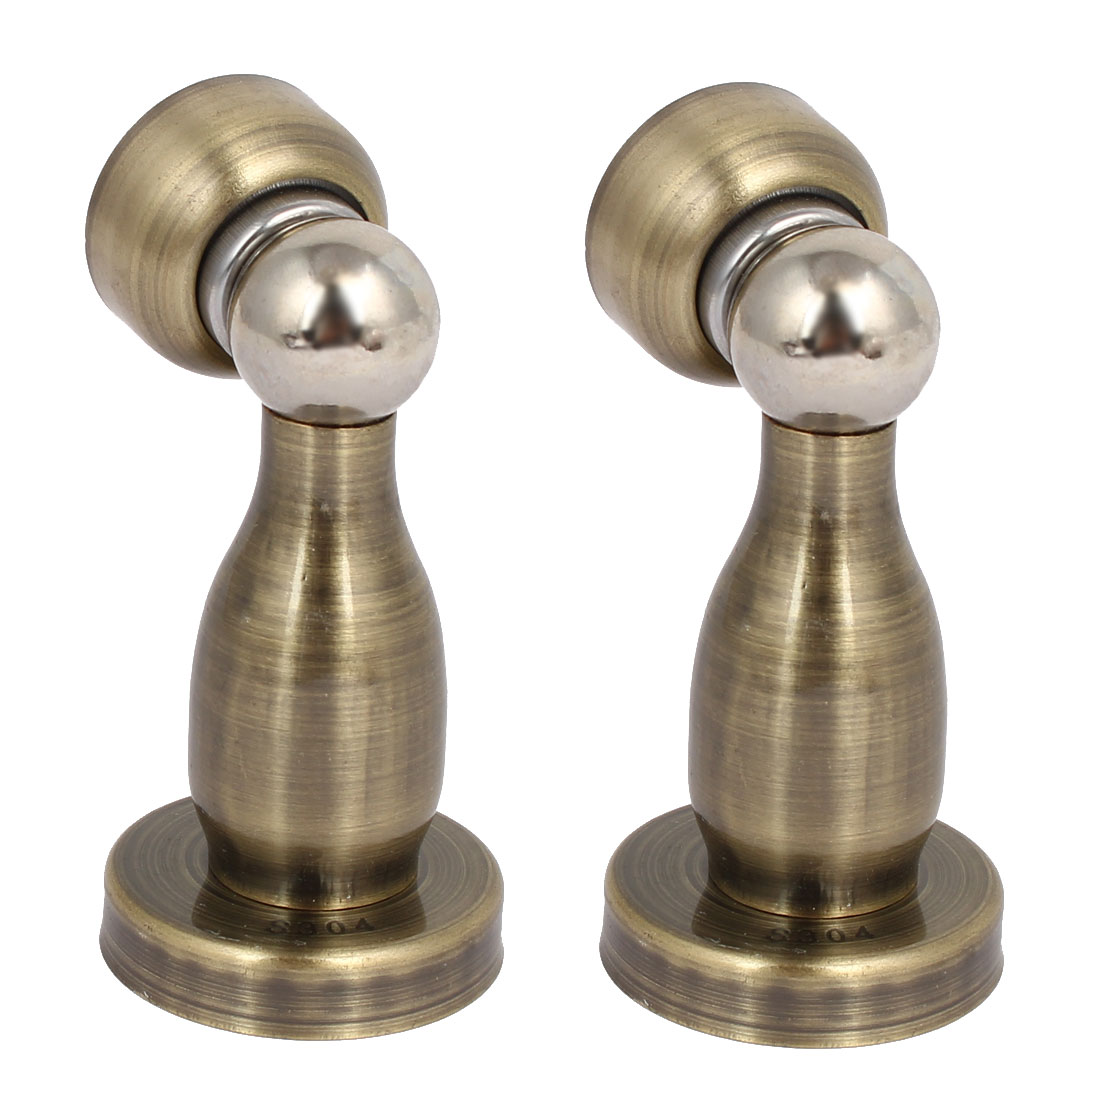 Kitchen Bathroom Door Stopper Holder Magnetic Catches Bronze Tone 43mmx80mm 2pcs